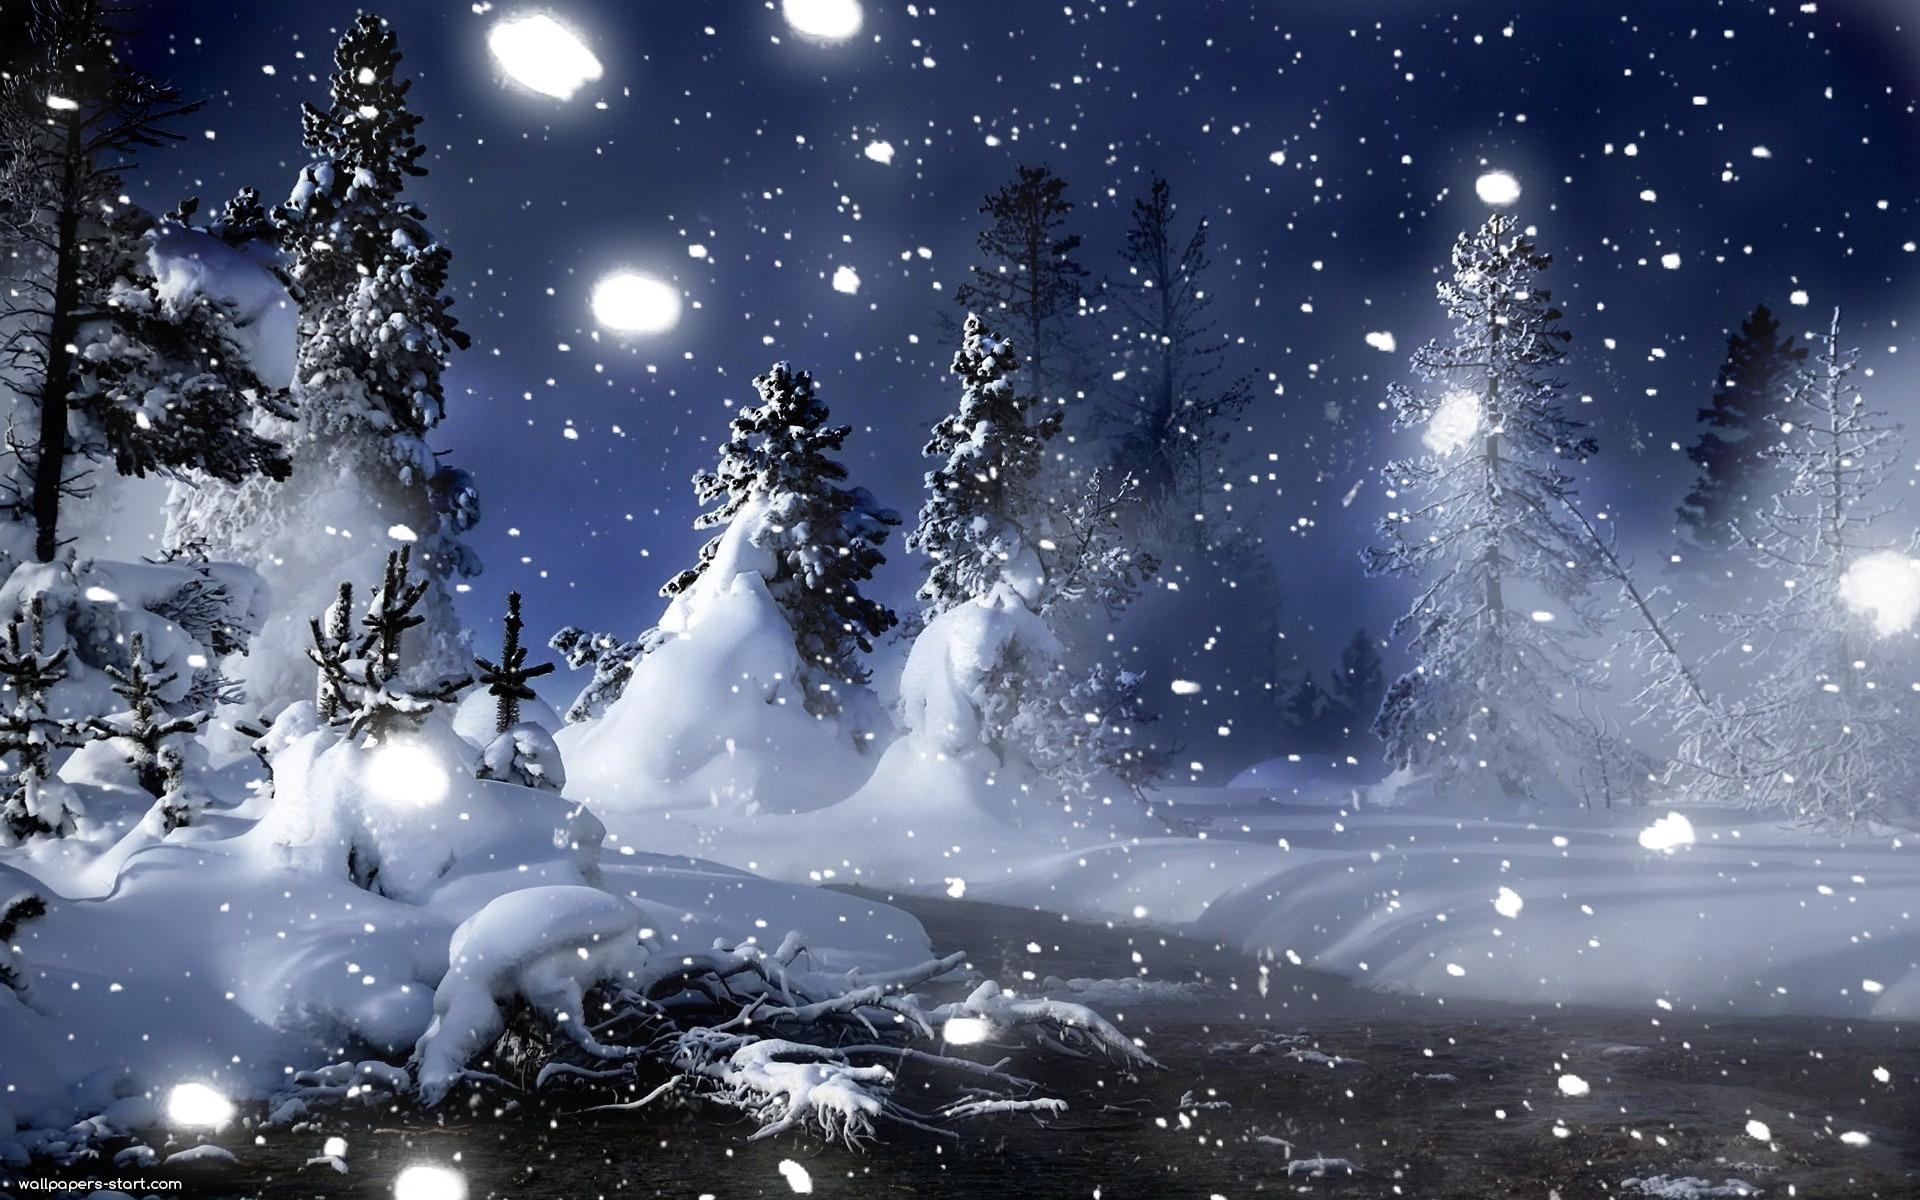 romantic winter night wallpapers mobile » outdoors wallpaper 1080p